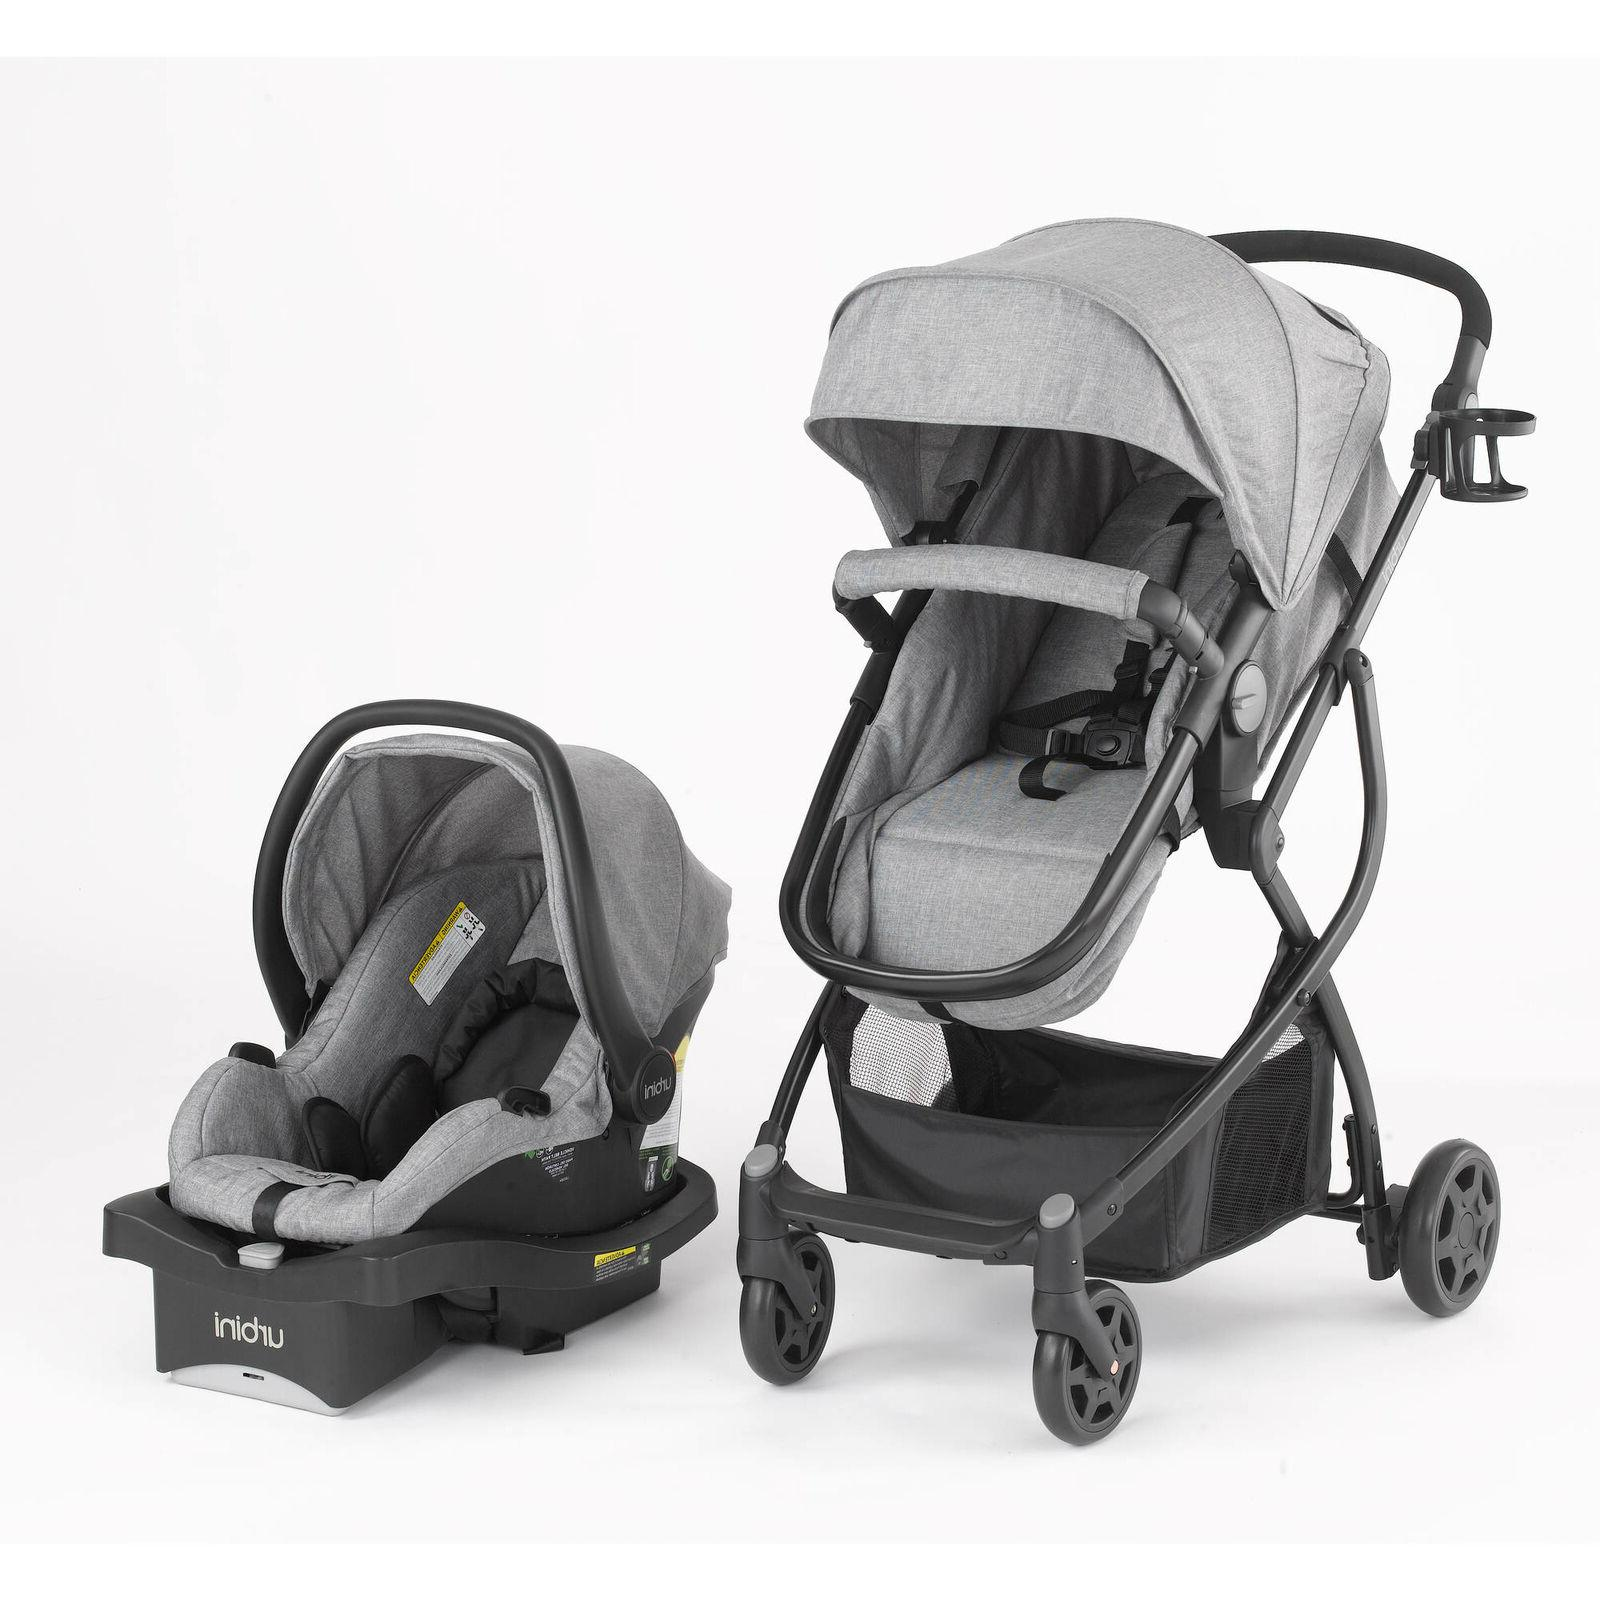 Baby Stroller Car Seat 3in1 Travel System Infant Buggy Carri